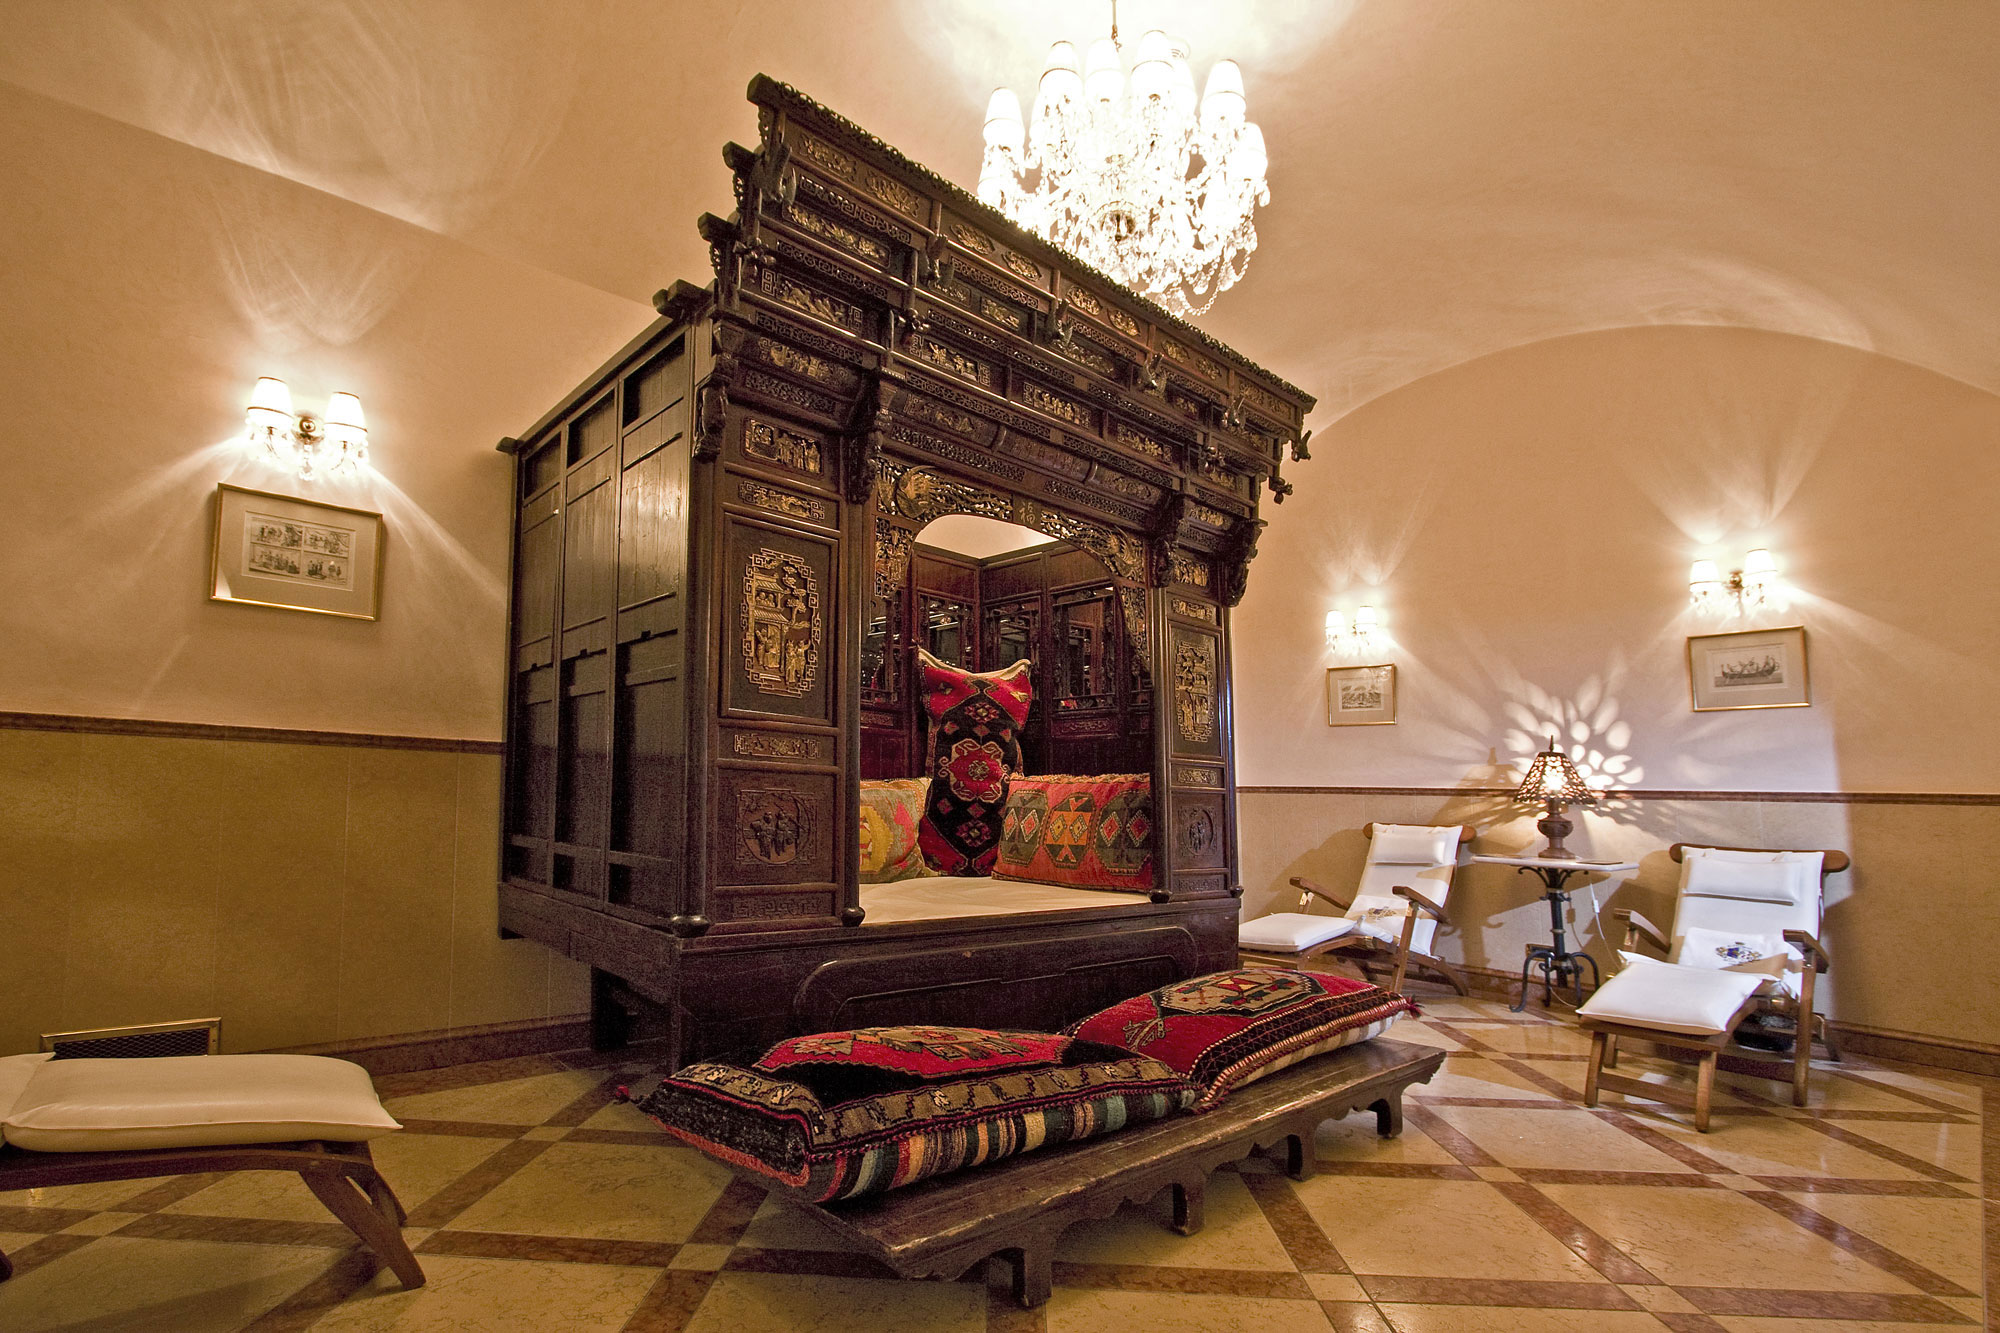 Romantic quirky prague jessinbelgium for Quirky hotels in prague